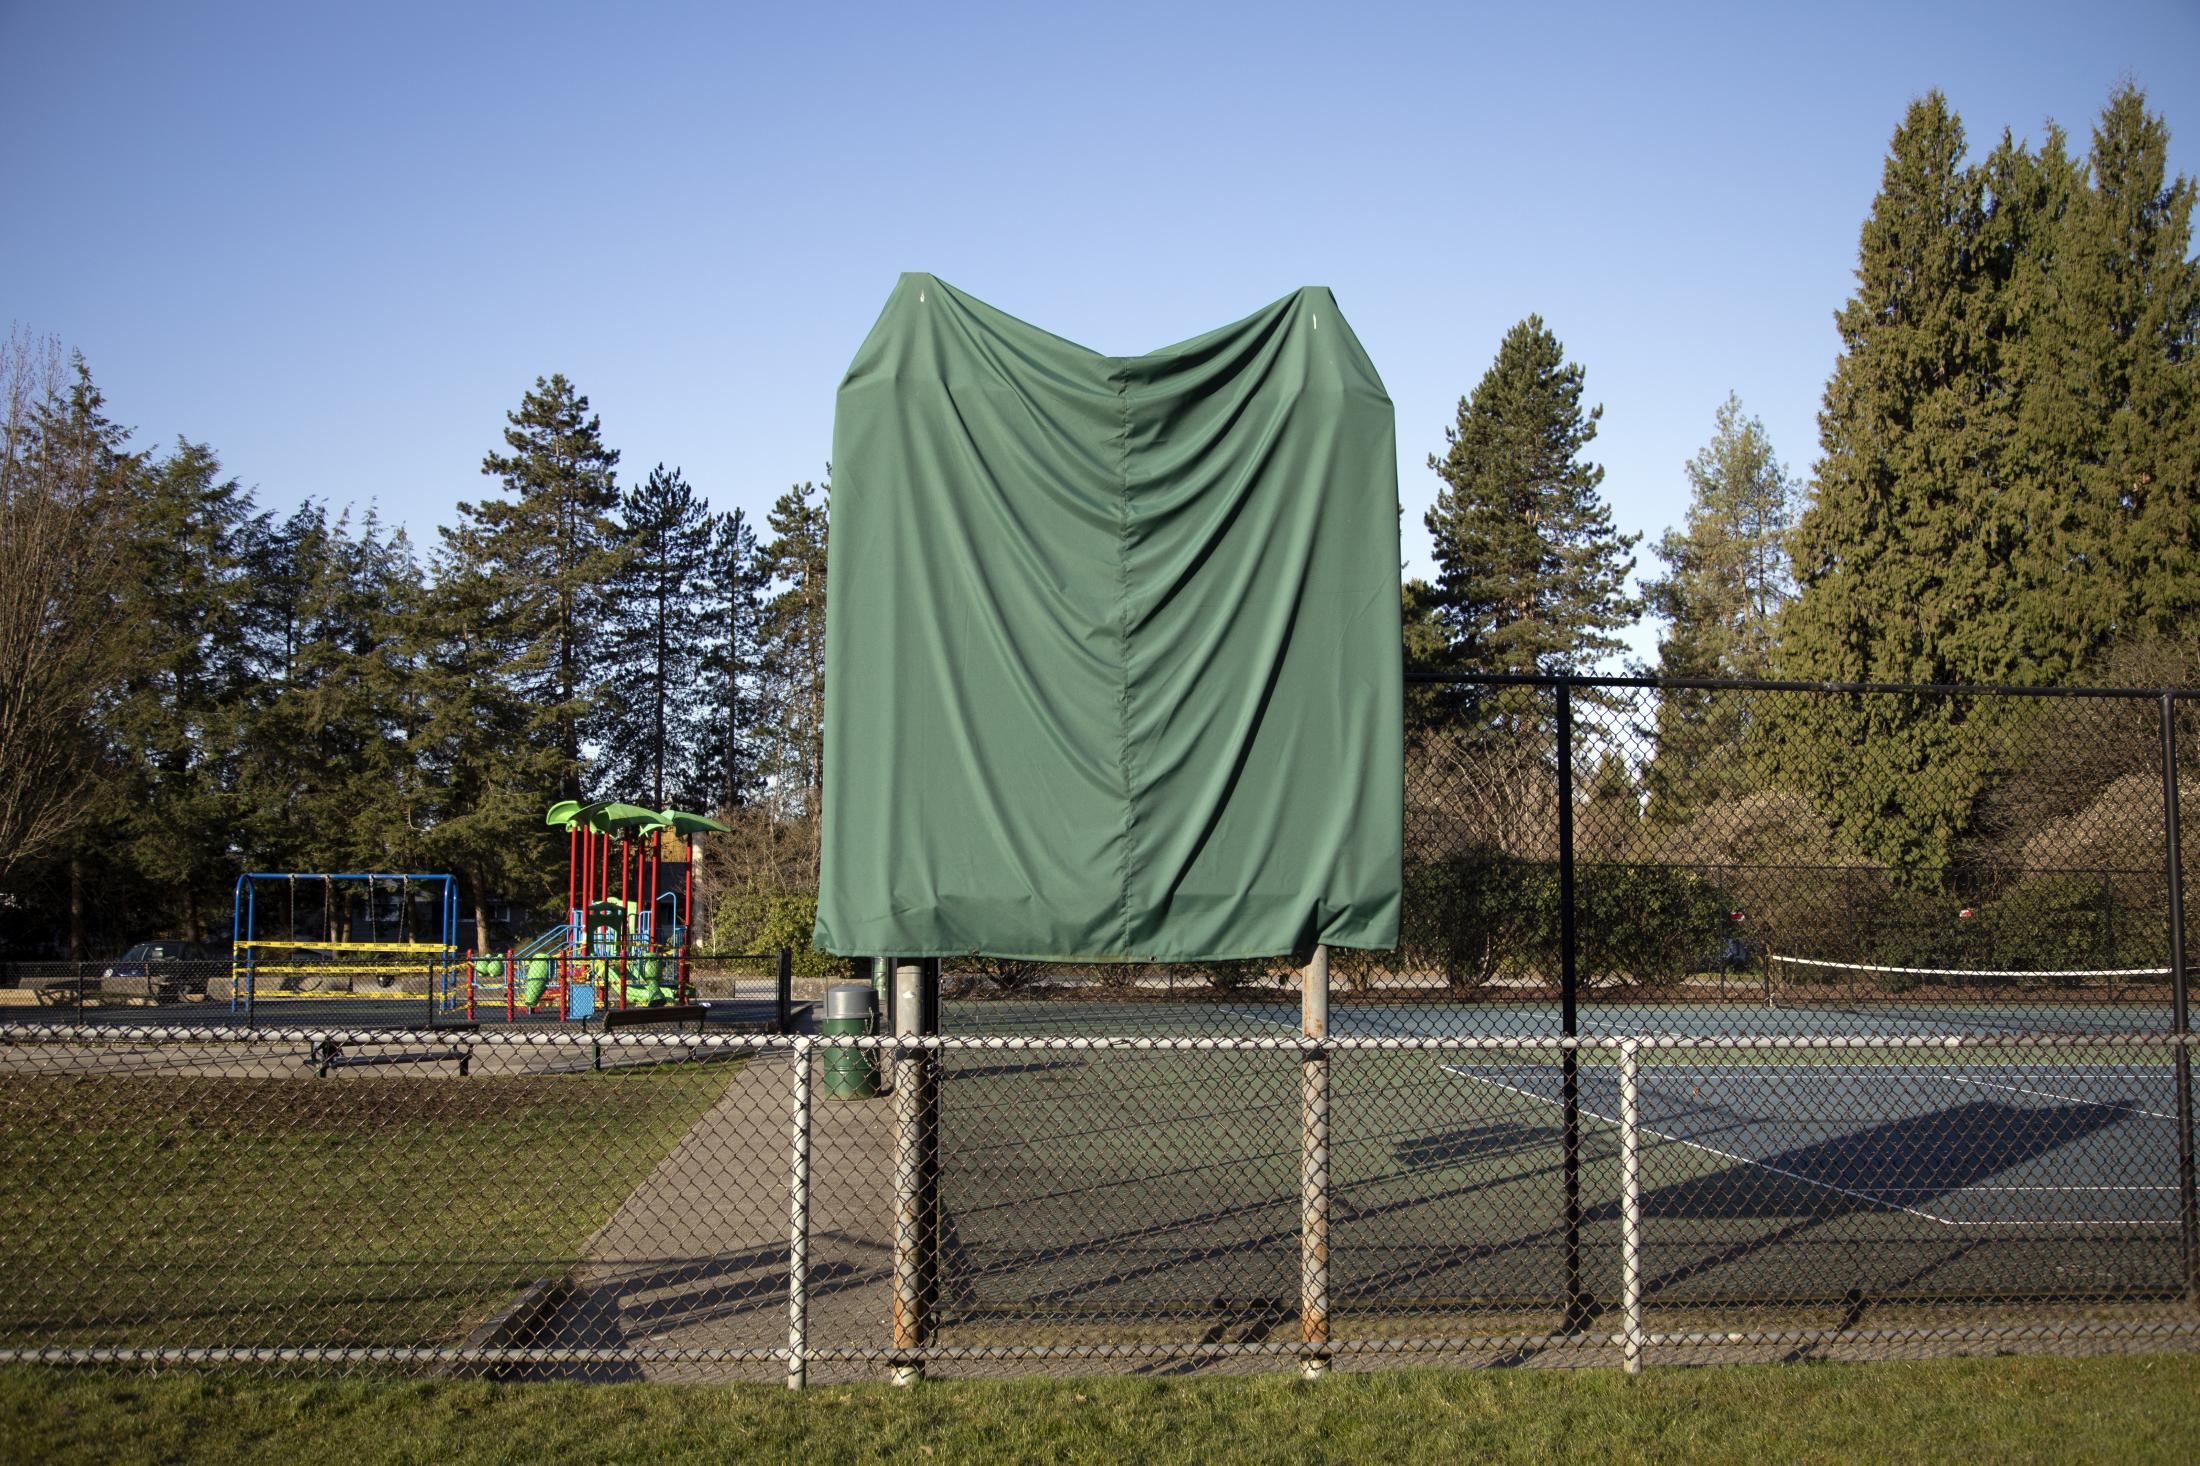 A playing field scoreboard is covered at Eldon Park in North Vancouver, B.C., on Saturday, March 21, 2020. Effective Friday, March 20, 2020, the City and District of North Vancouver have closed all playgrounds and playing fields in an attempt to curb the spread of COVID-19. North Vancouver has been a hotspot of COVID-19, with ten deaths connected to the Lynn Valley Care Centre as of Monday, March 23, 2020.